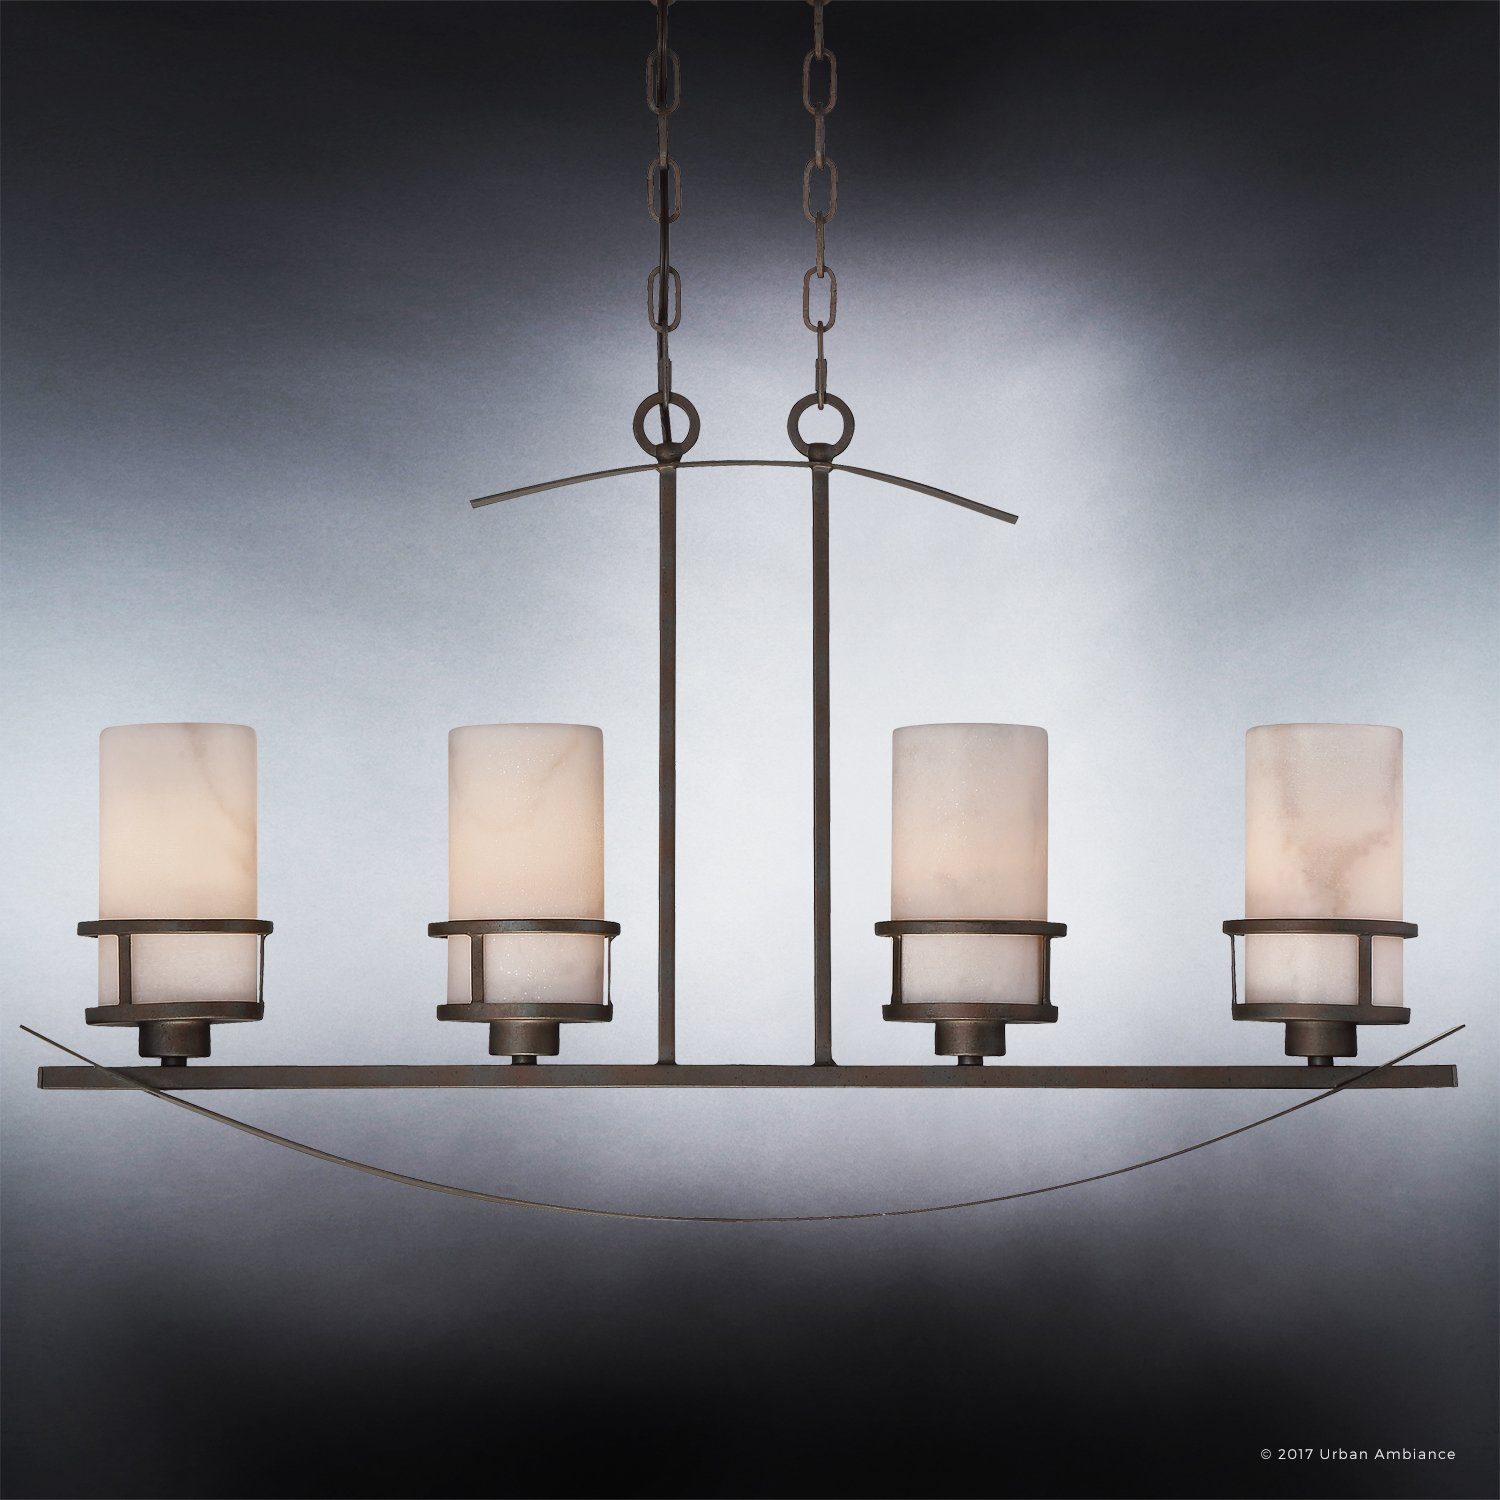 Luxury Rustic Chandelier, Large Size: 18.5''H x 32.5''W, with Craftsman Style Elements, Banded Wrought Iron Design, Forged Iron Finish and White Onyx Stone Shades, UQL2415 by Urban Ambiance by Urban Ambiance (Image #5)